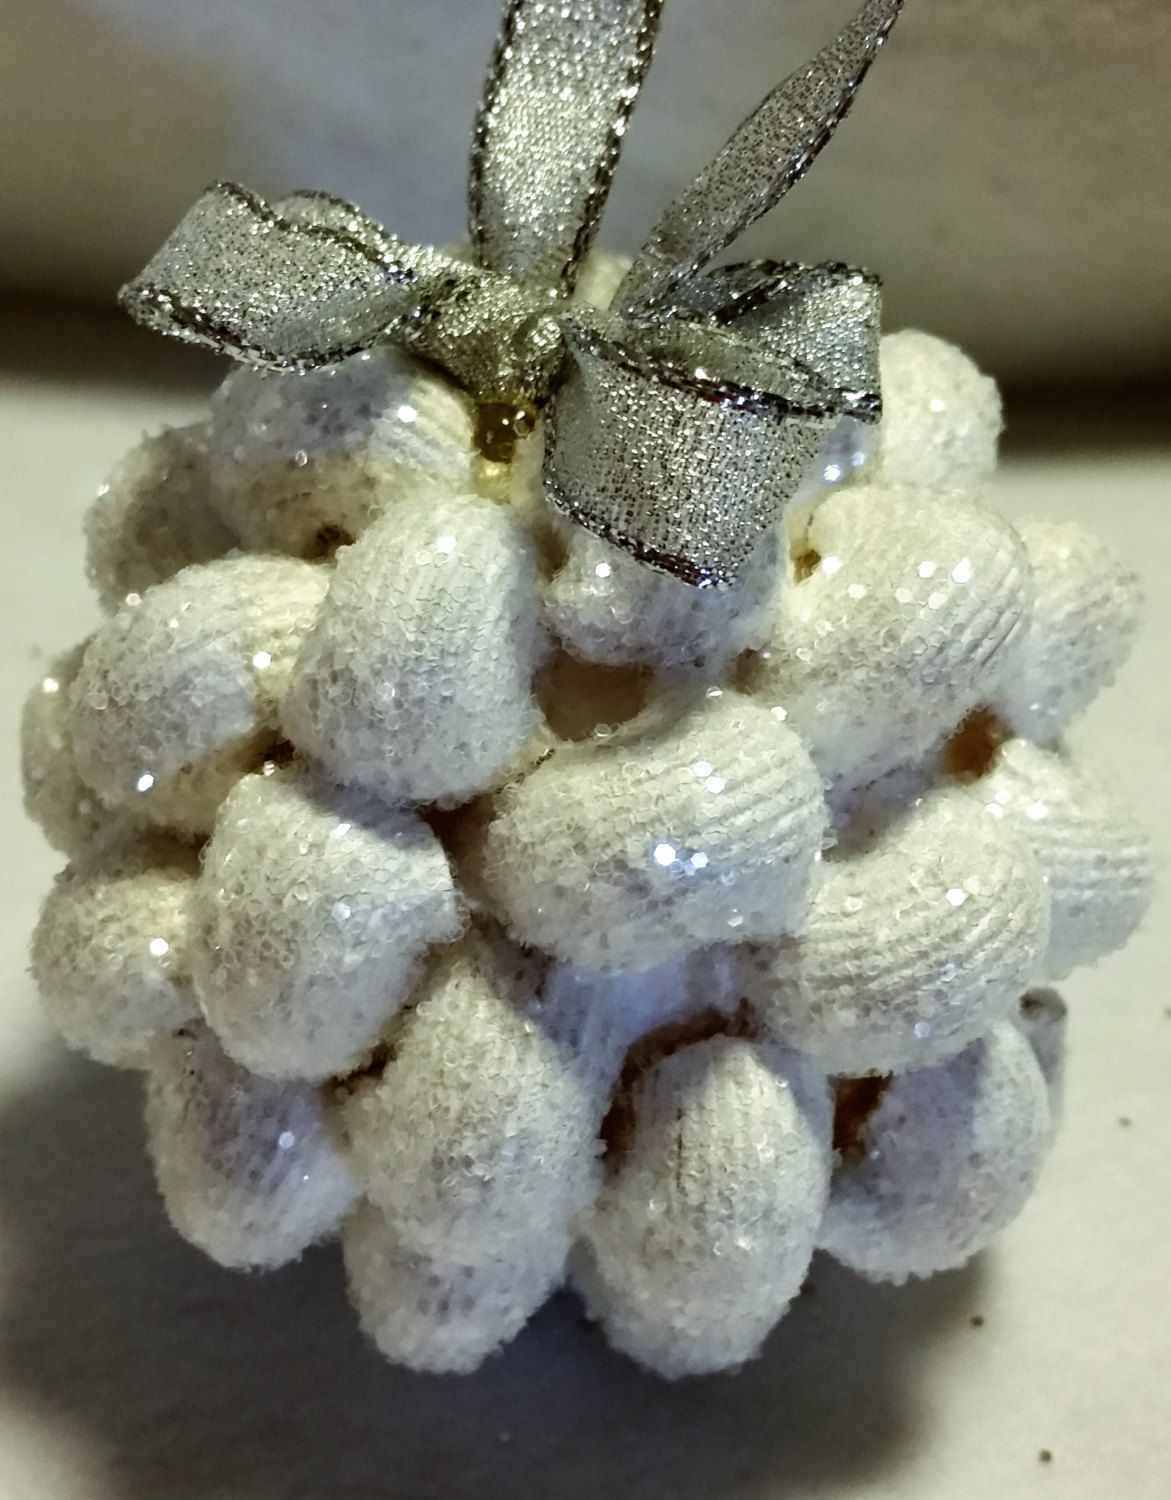 Textured glitter ornament with white undertone color and irridescent glitter and silver bow by JenniesCraftables on Etsy